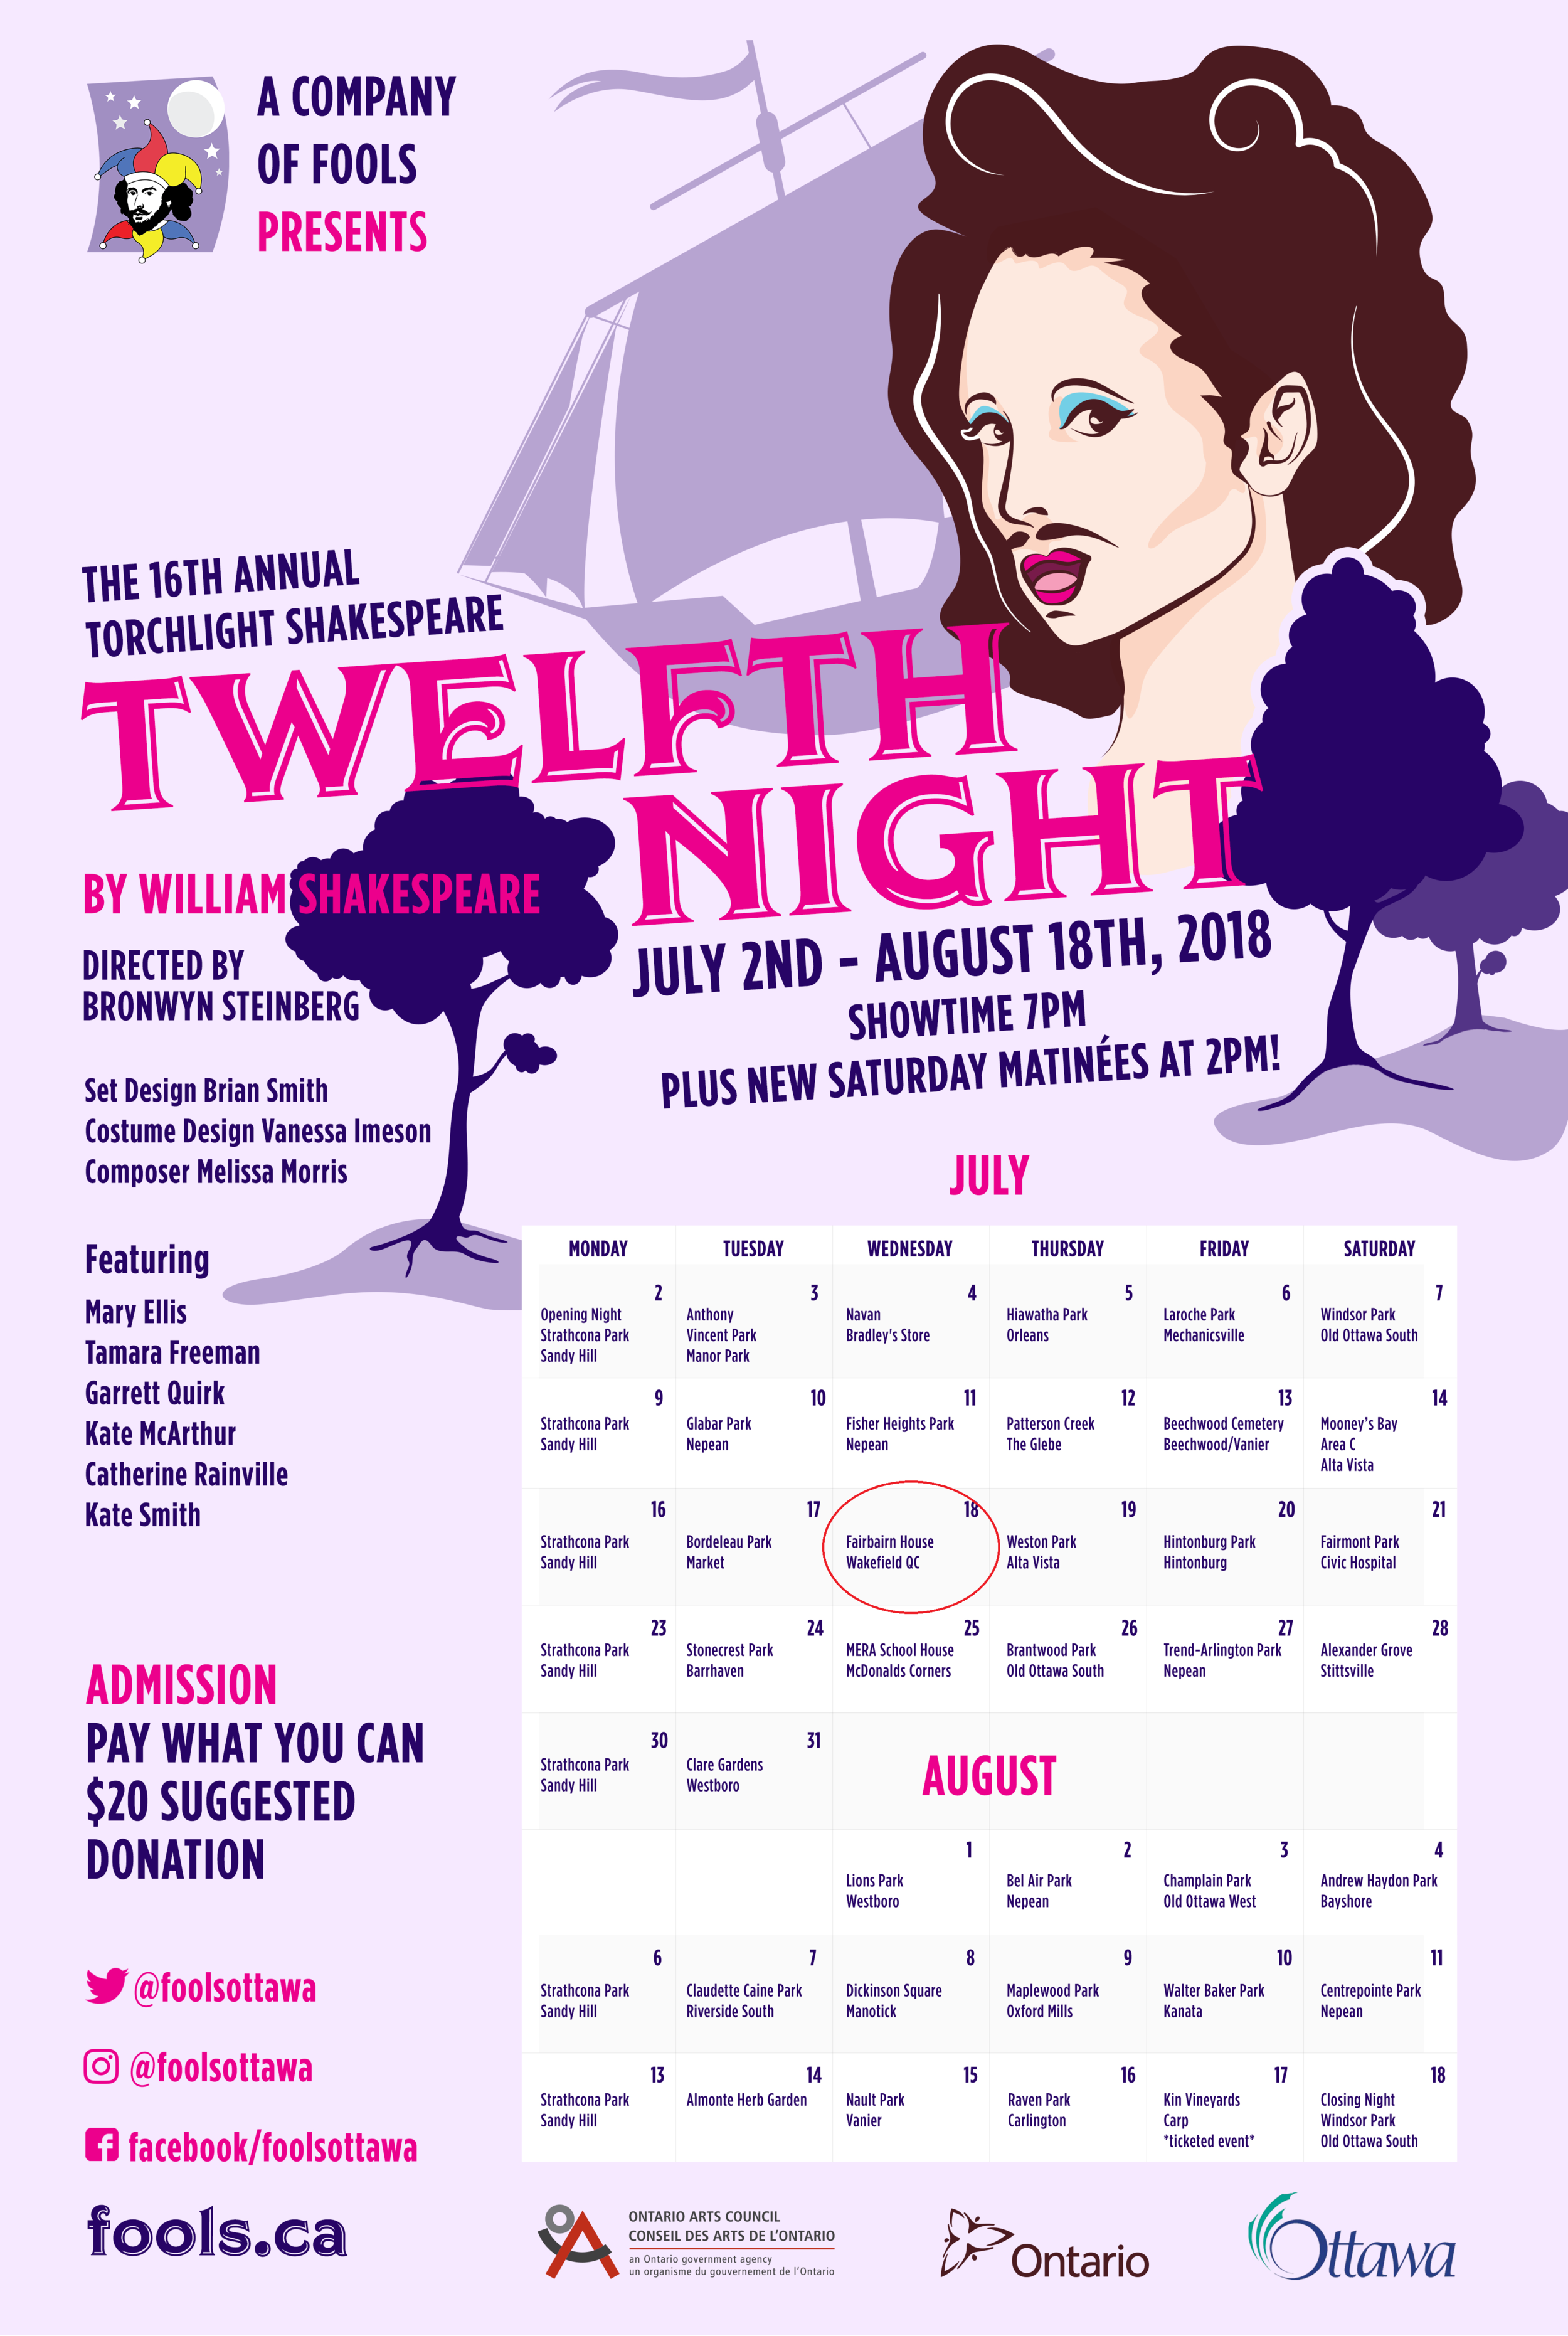 Fairbairn show date: Wednesday, July 18, 2018,7 pm - This 90 minute 6-actor production of Twelfth Night will play against the backdrop of 35 community parks in 50 performances across Ottawa and the surrounding area. Join the Fools for this vibrant gender-bending comedy of love, music, and mistaken identity. Fun for the whole family!Bring a lawn chair or blanket, bug spray, a picnic and your sense of humour! Pass-the-hat donations are collected at the end of the performance.